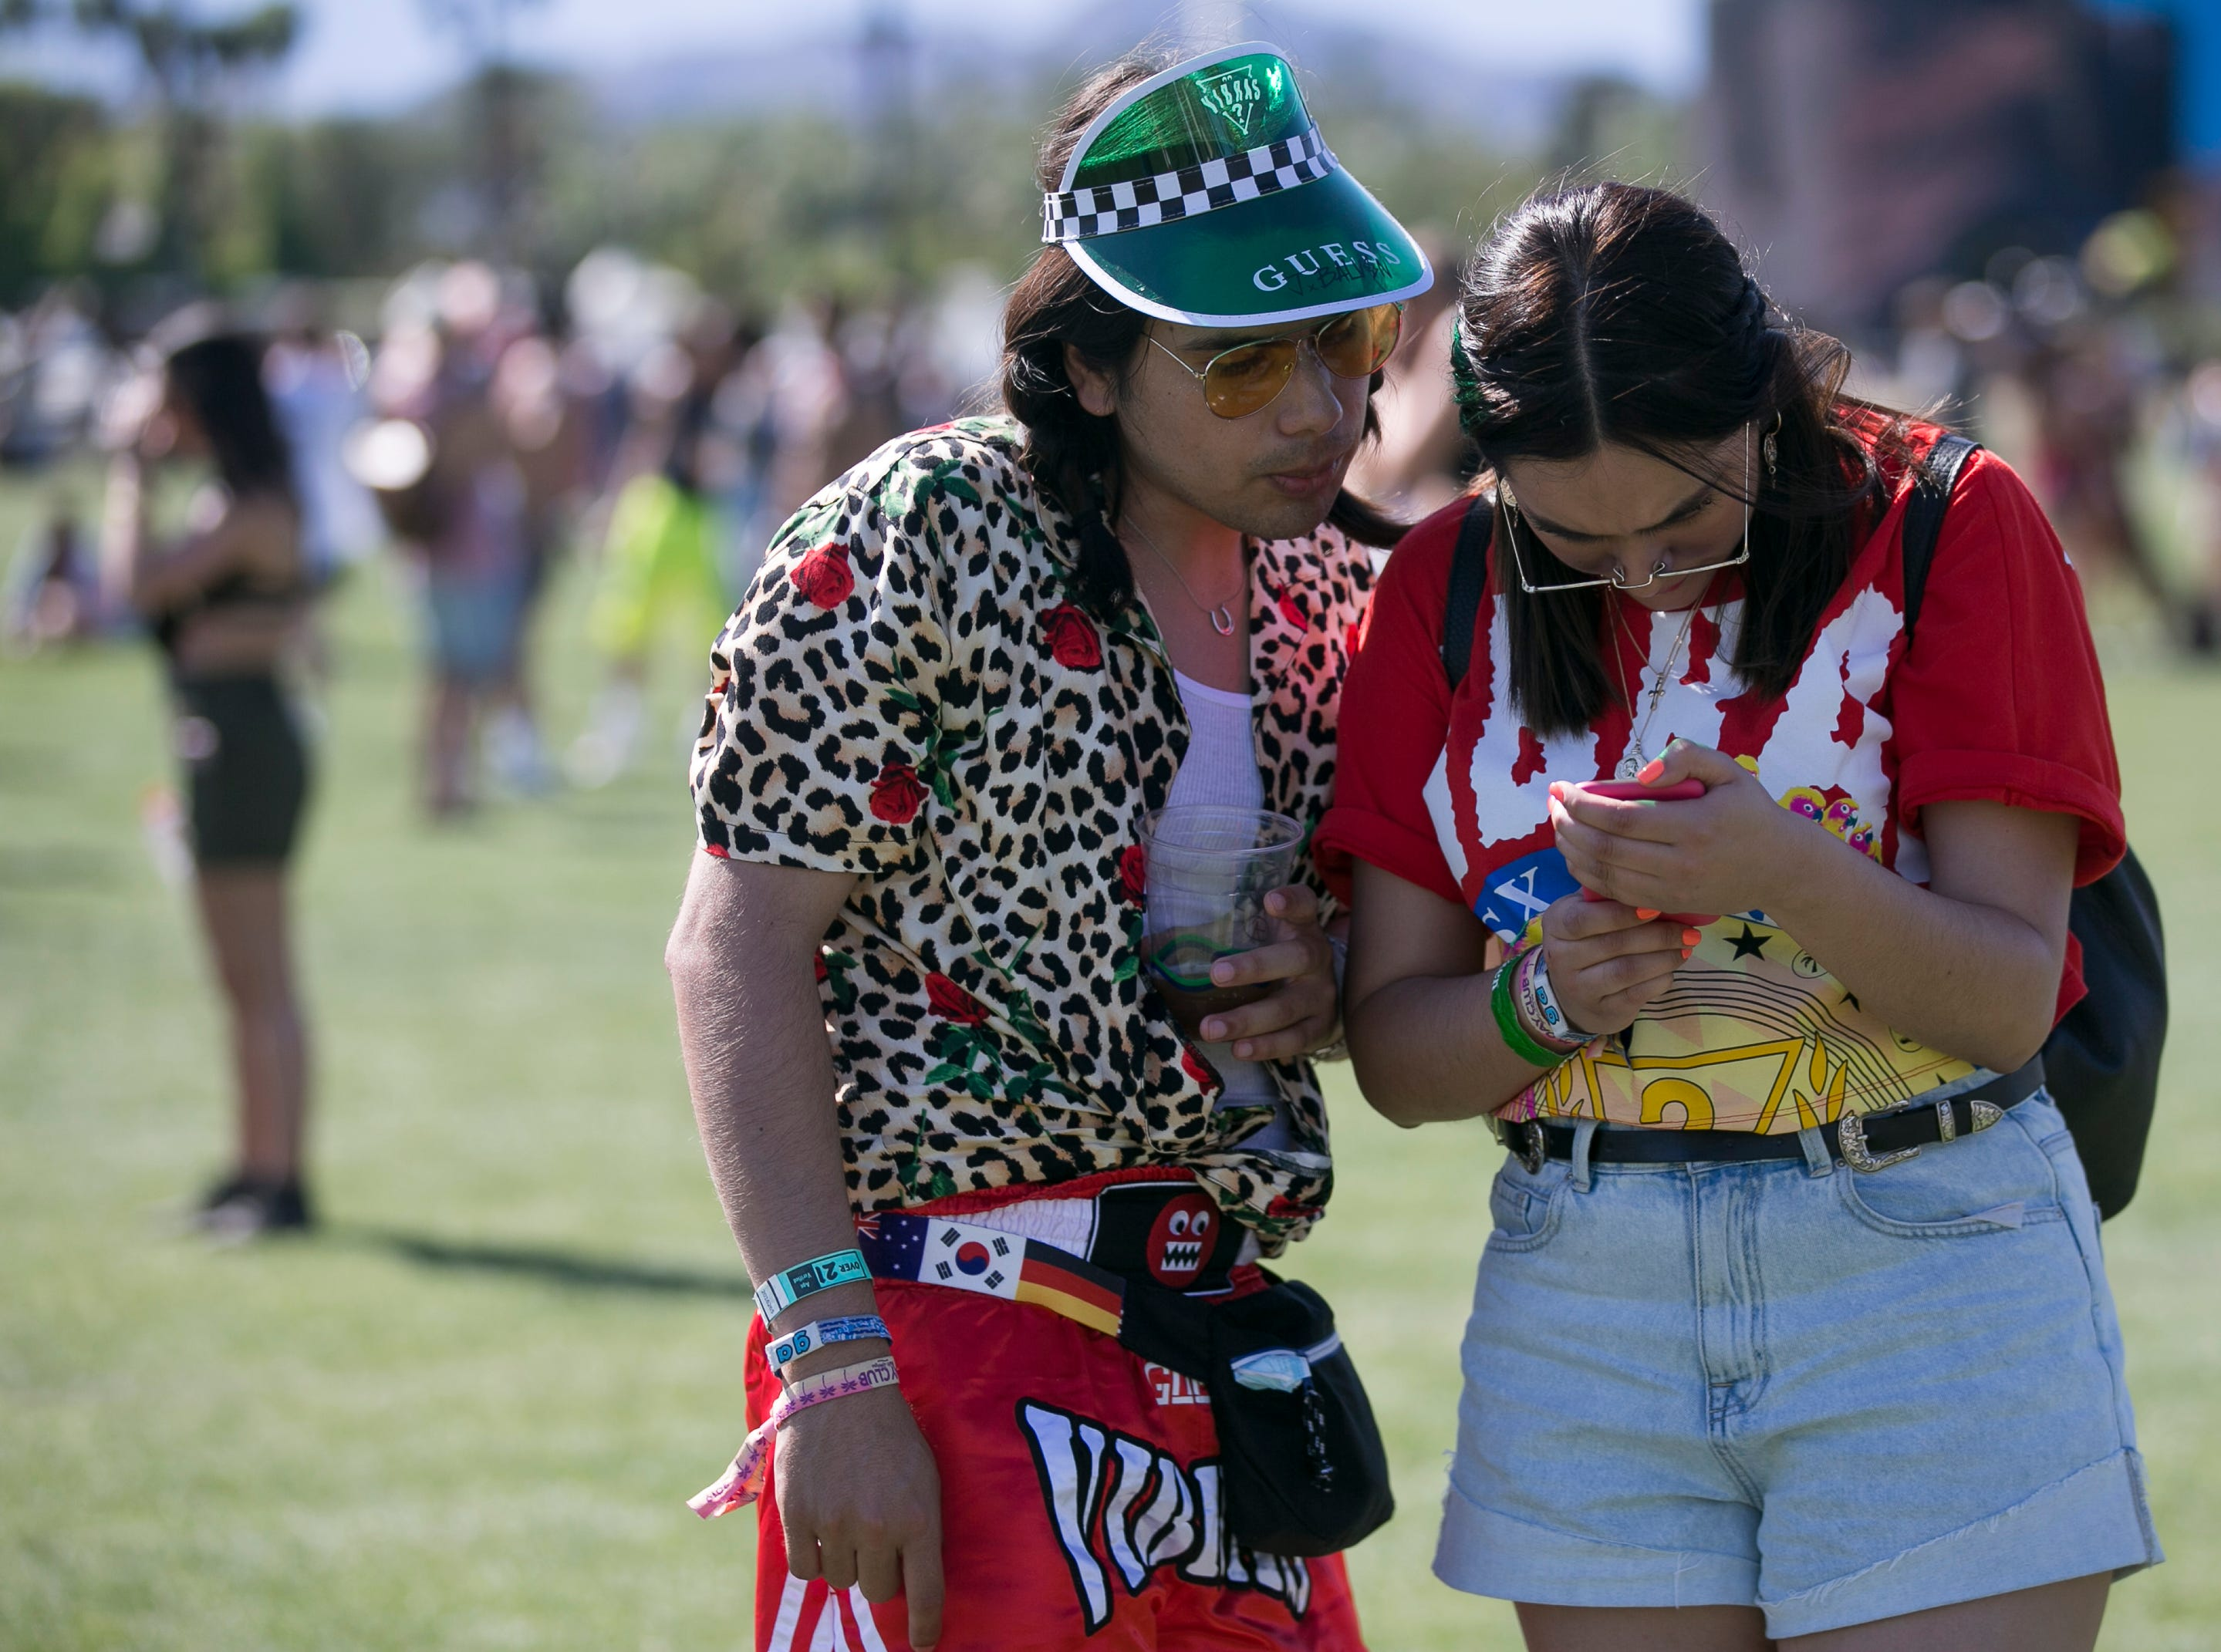 Festival goers walk the grounds at Coachella 2019 in Indio, Calif. on Sat. April 13, 2019.